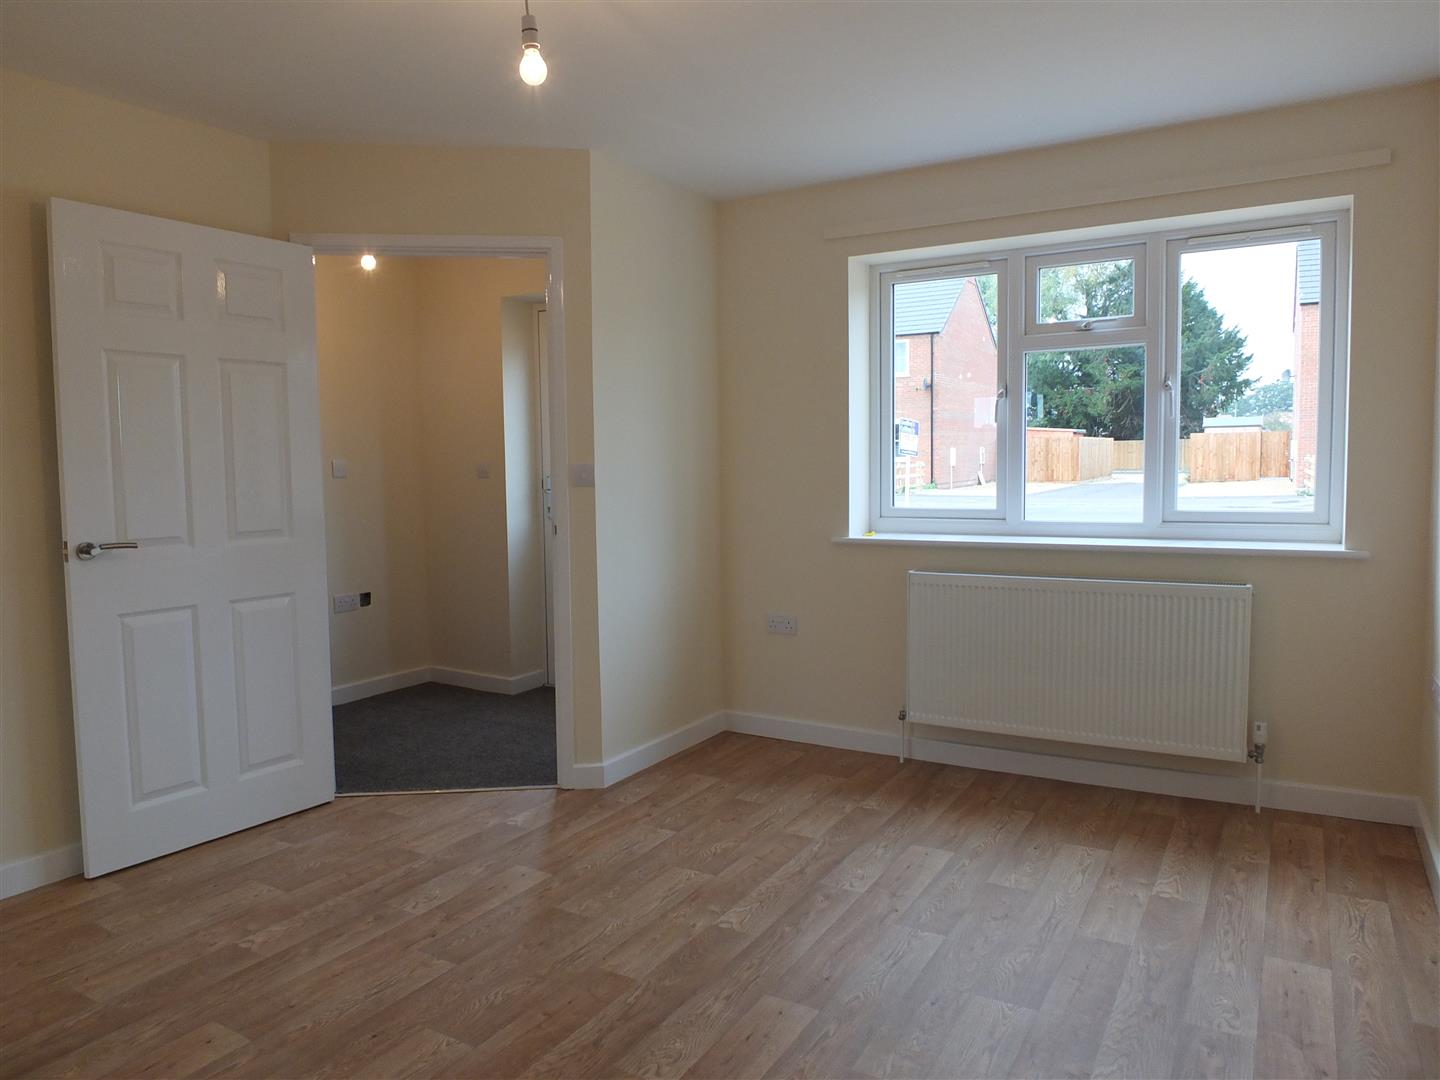 3 bed house to rent in Little London, Long Sutton  - Property Image 8